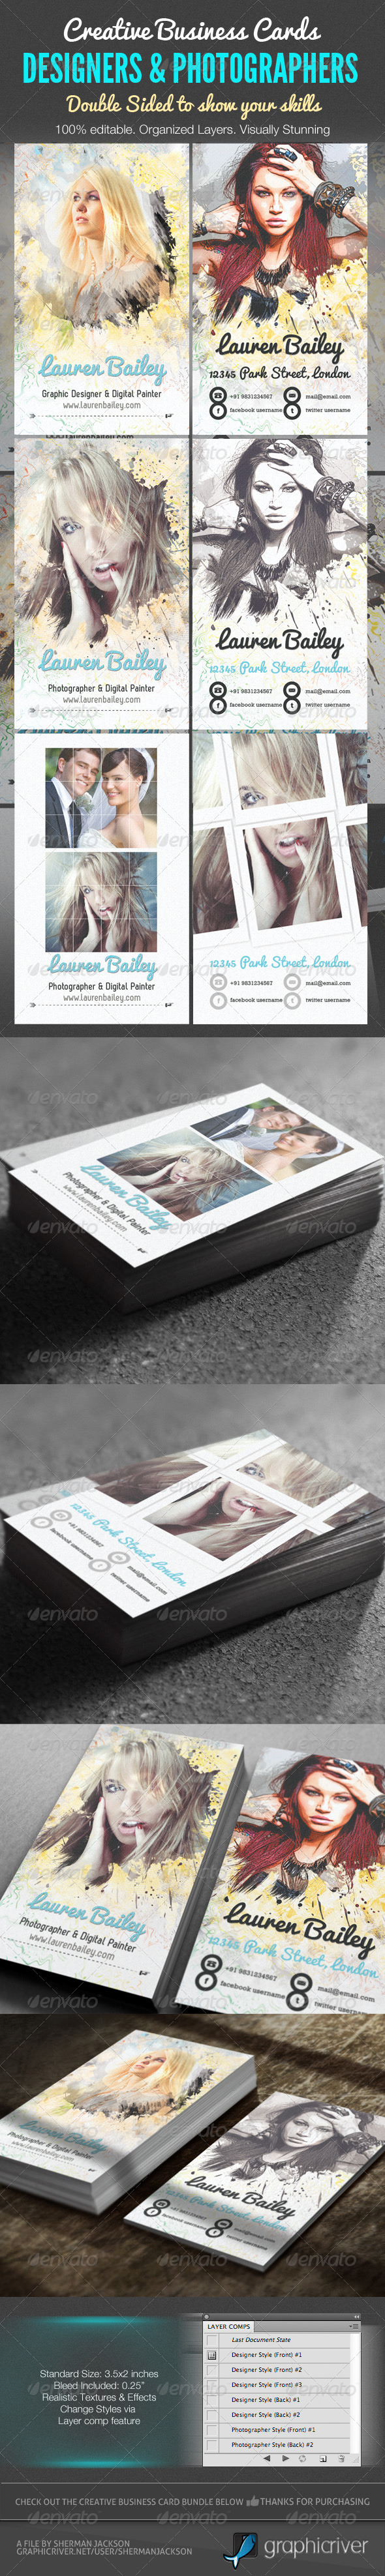 GraphicRiver Creative Business Cards Designer &Photographer 2048627